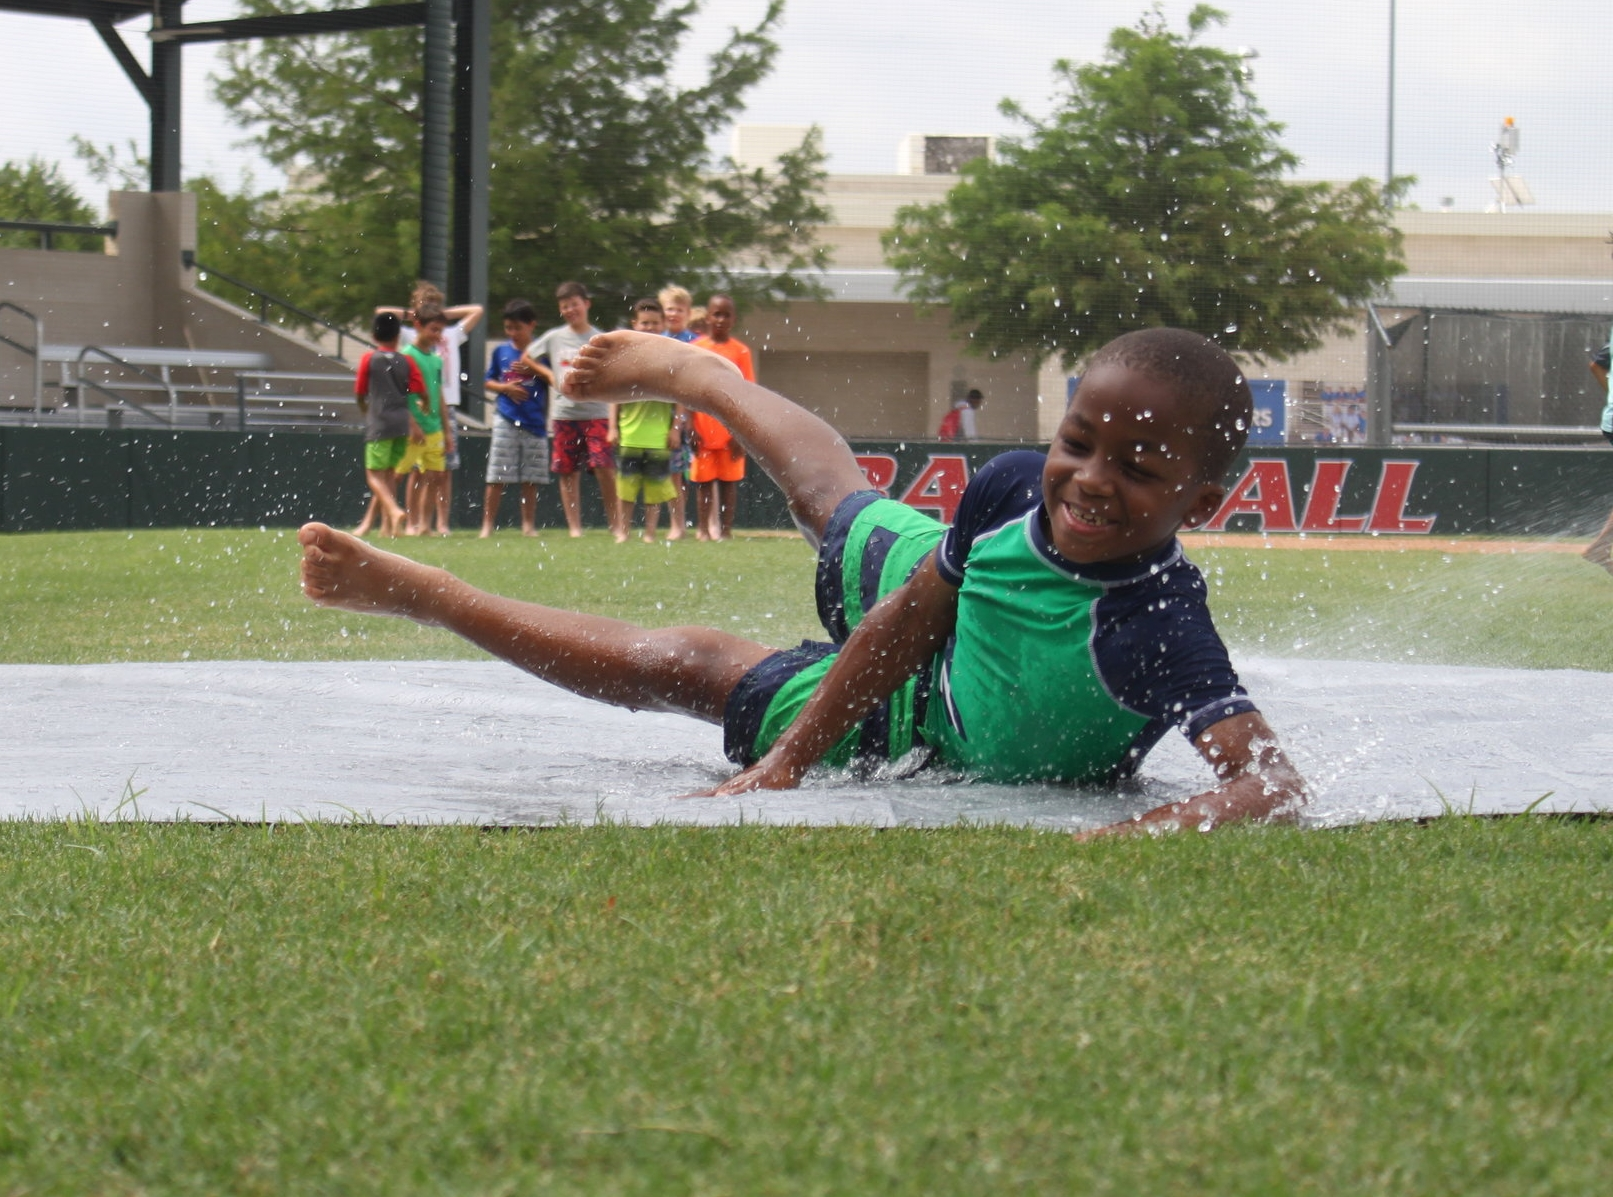 Boy has fun doing the slip and slide during the Baseball Camp at Parish Summer in Dallas, Texas.